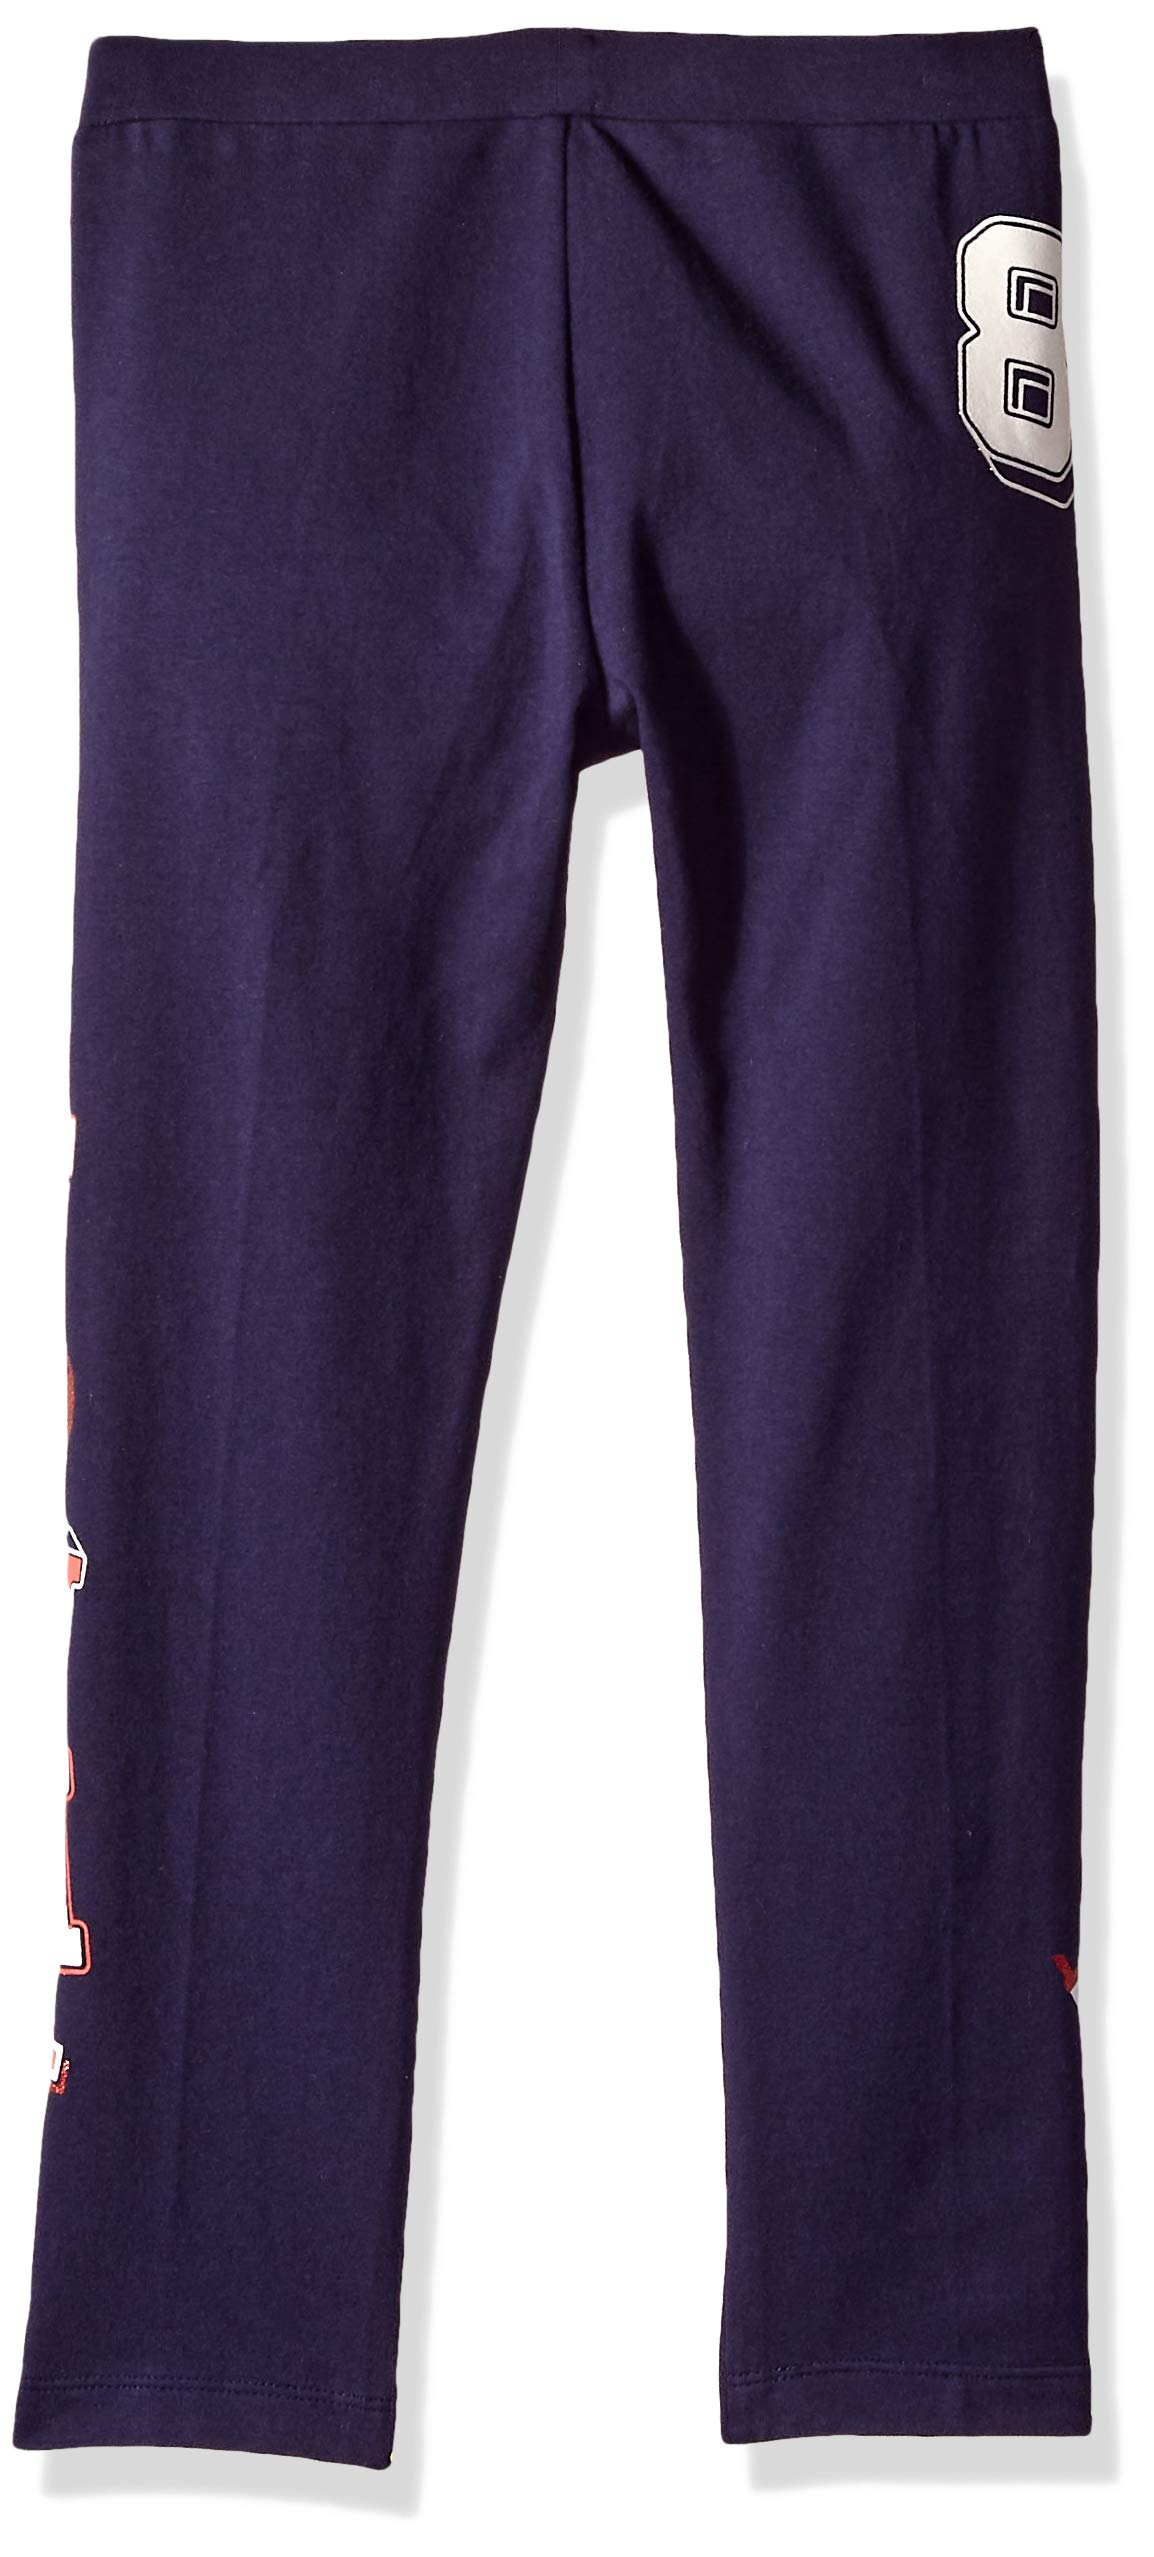 Tommy Hilfiger Girls' Adaptive Leggings with Elastic Waist, evening blue X-Small by Tommy Hilfiger (Image #2)